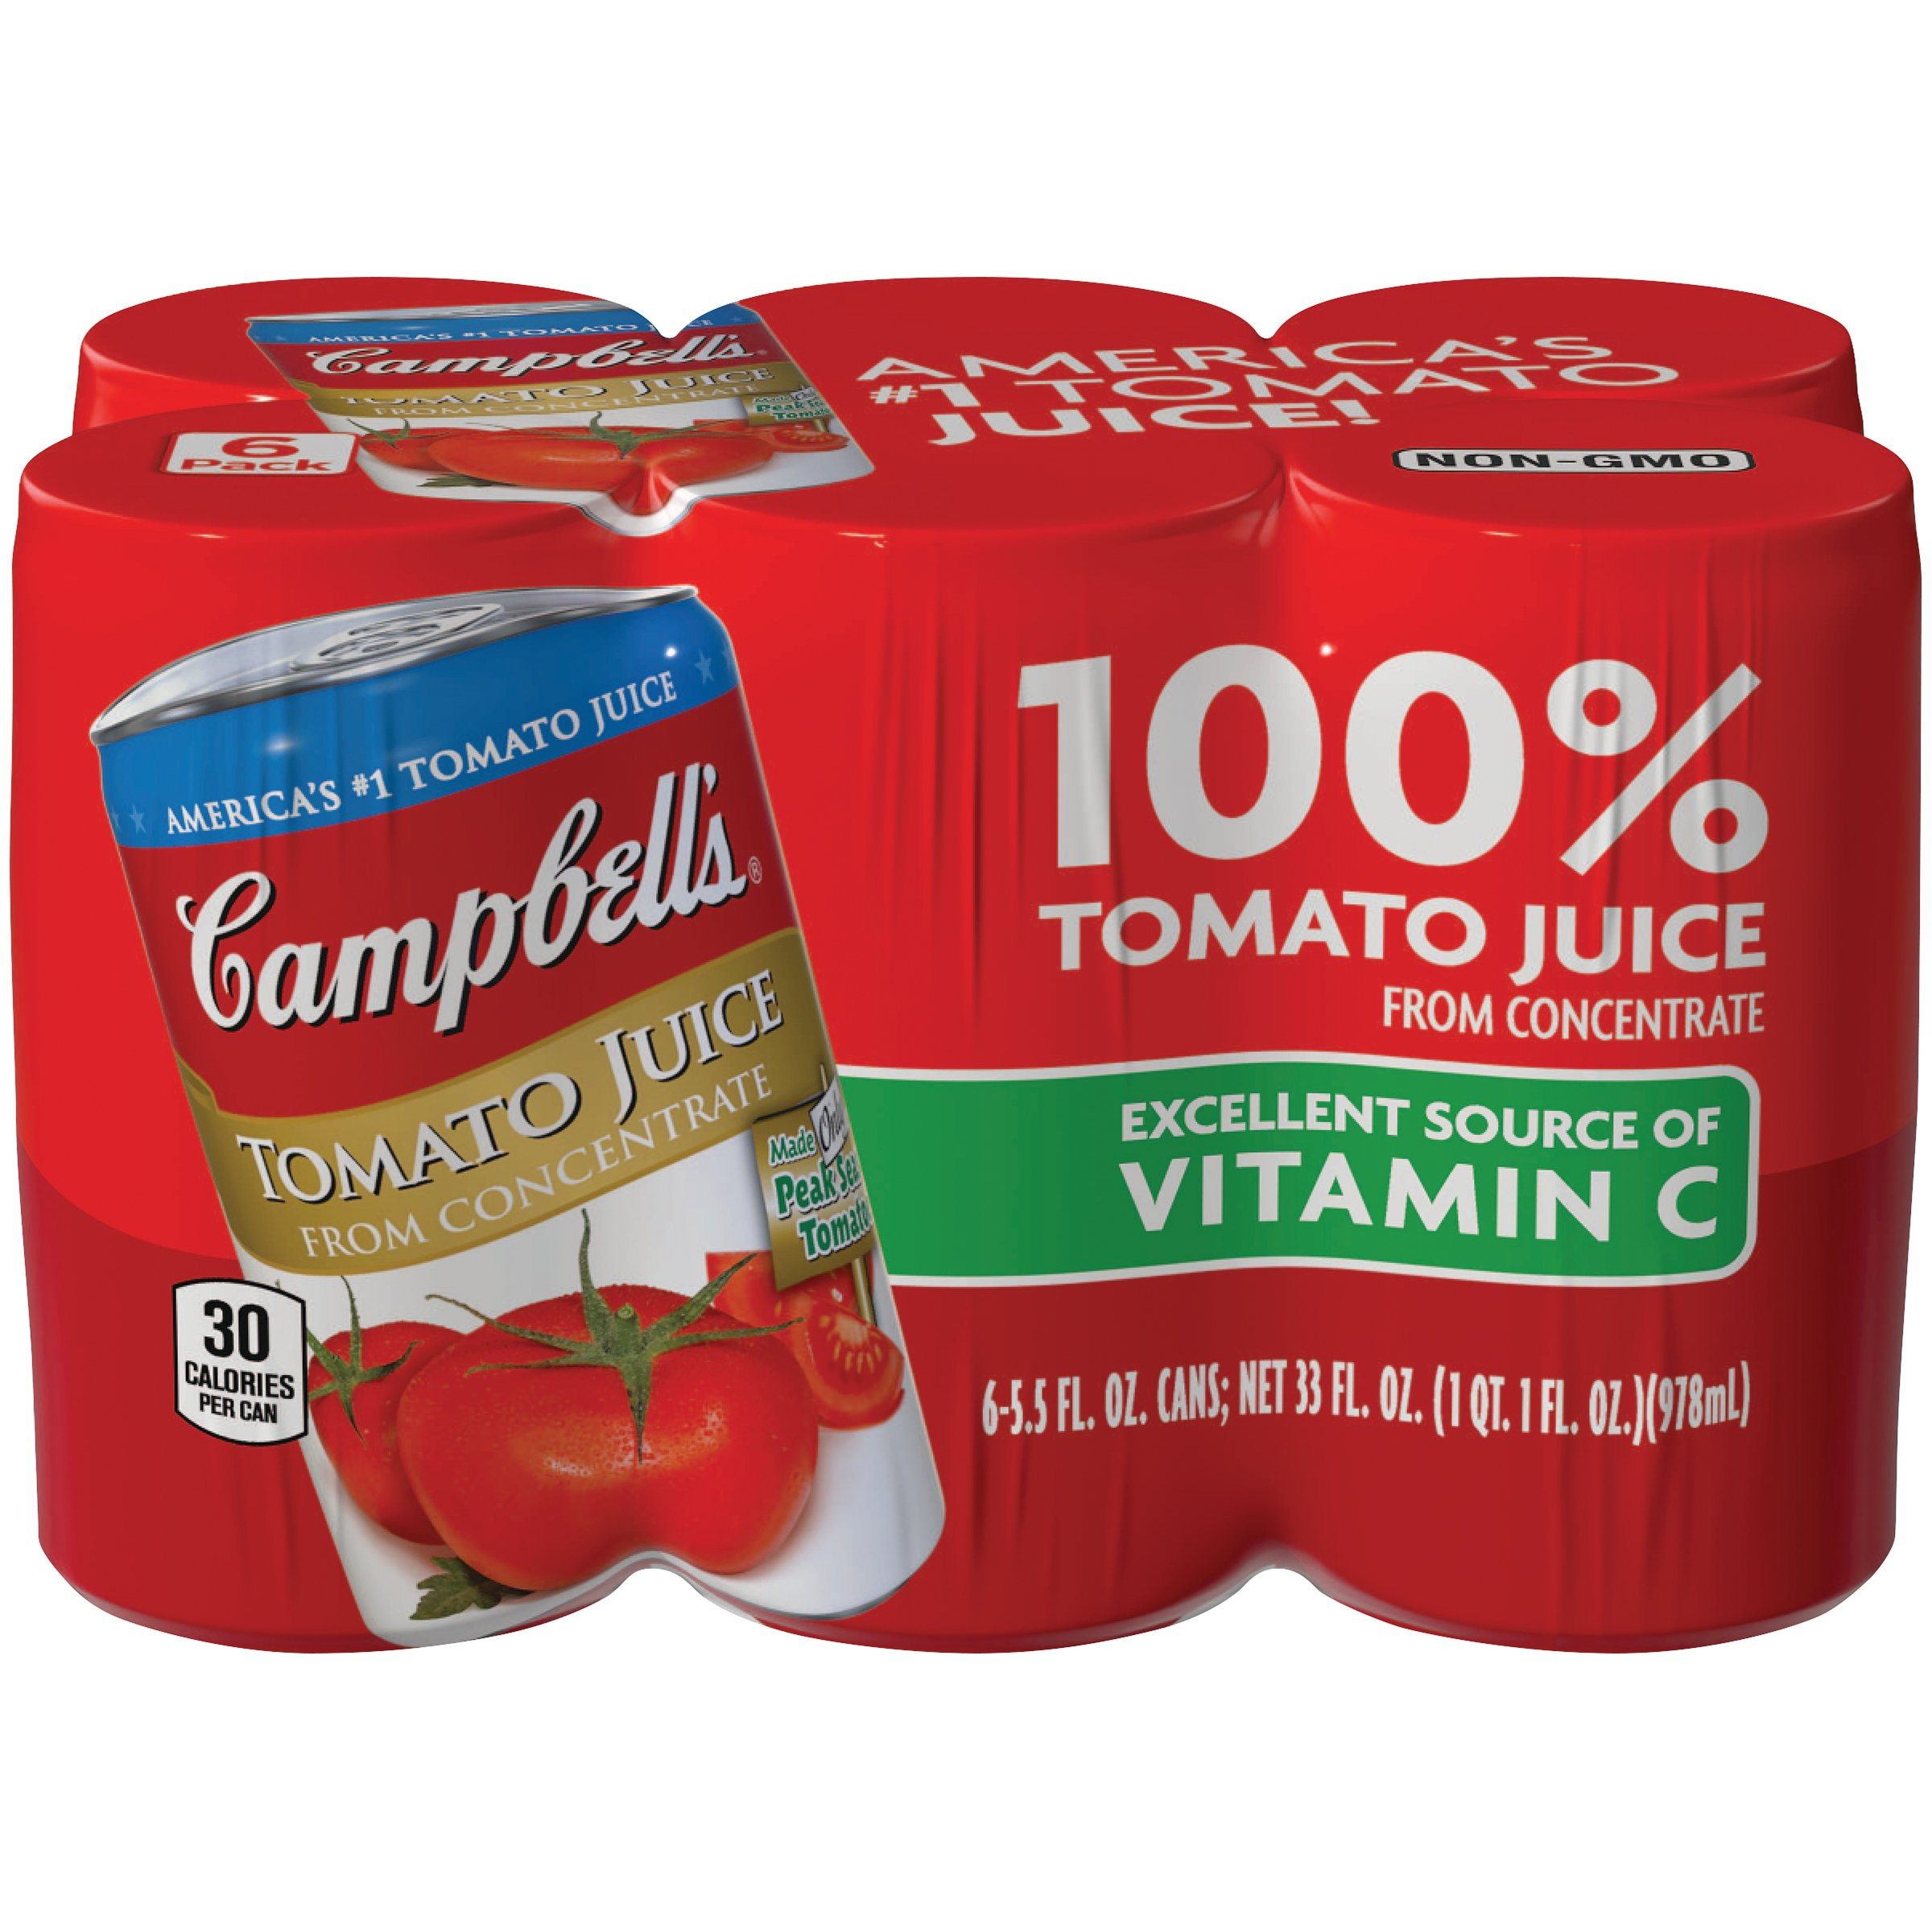 Amazon.com : Campbell's Tomato Juice, 5.5 oz., 48 Count : Grocery & Gourmet  Food